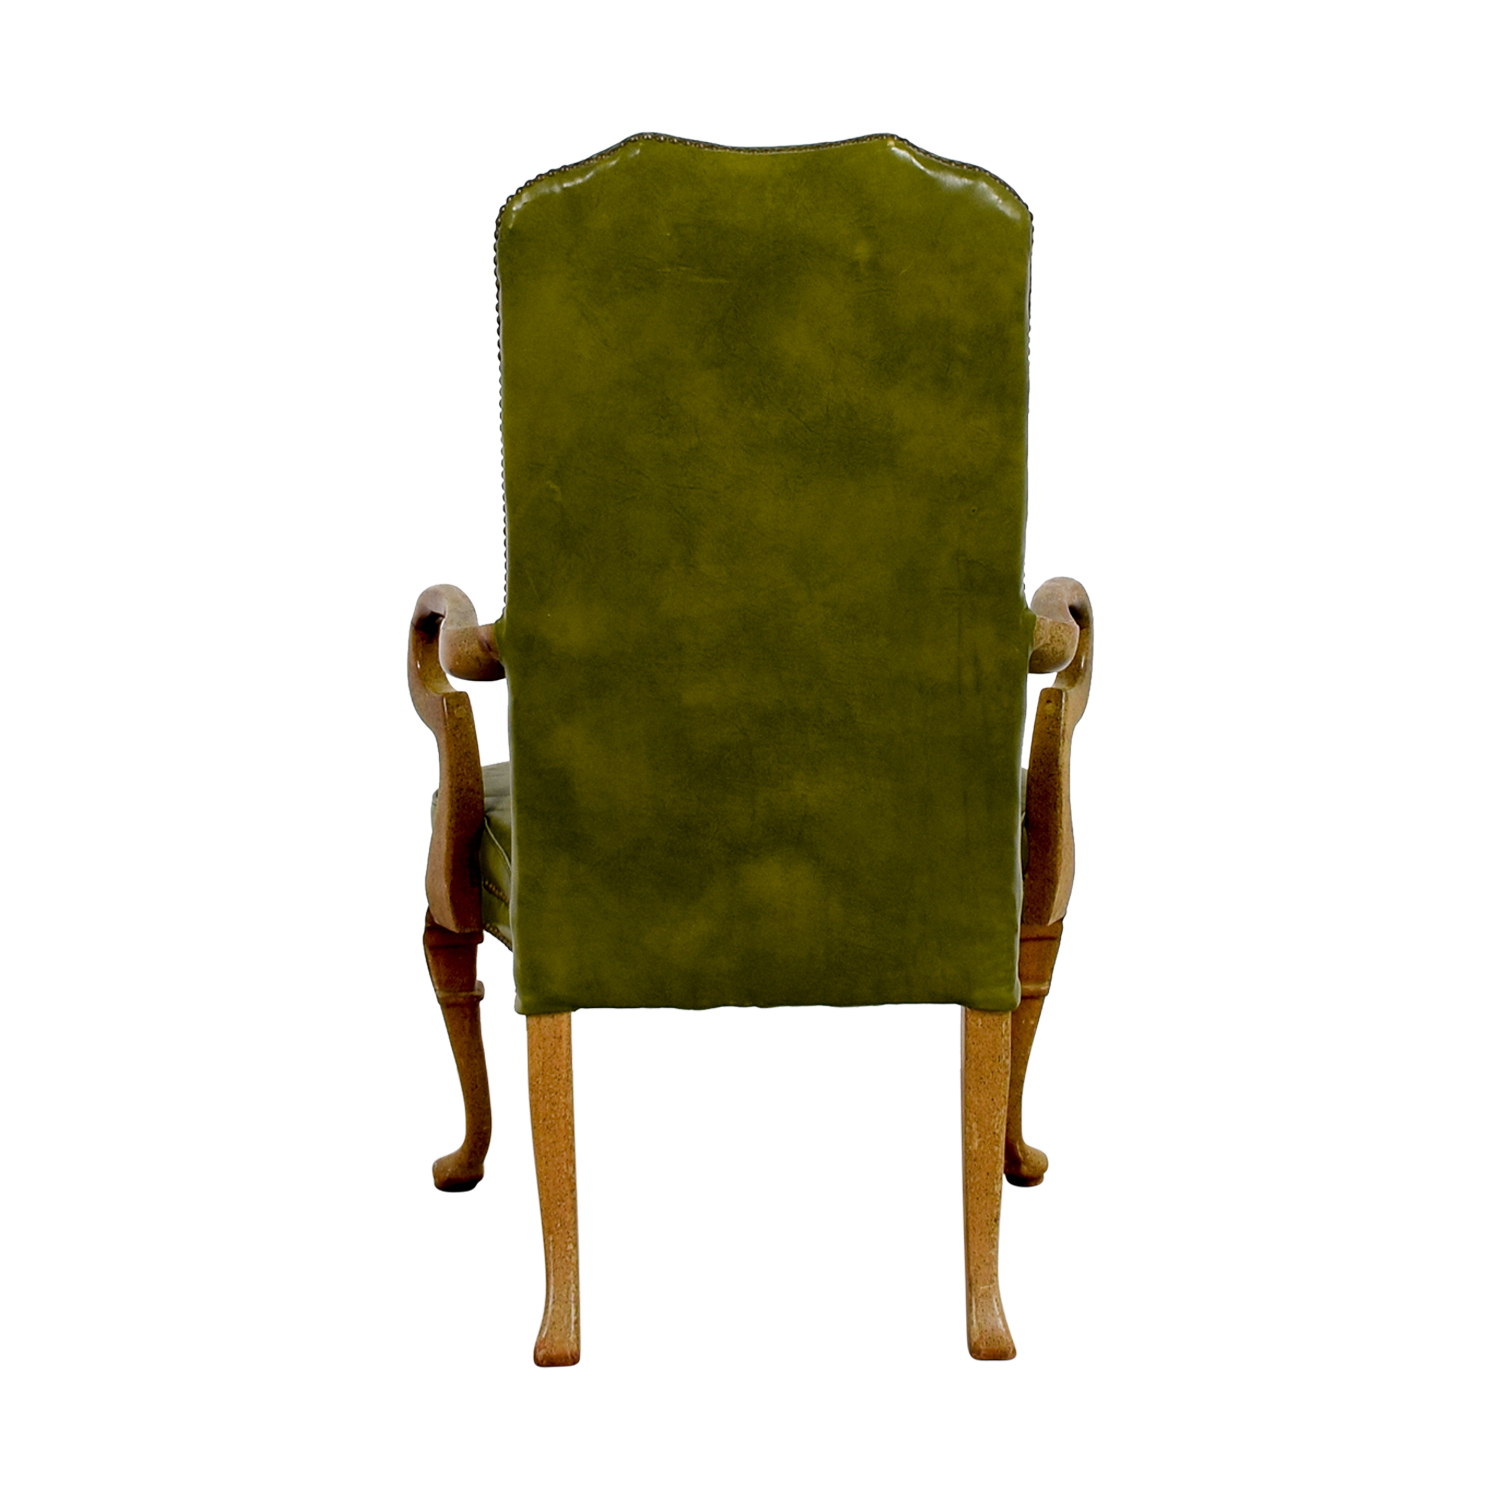 Green Leather Studded Regency Chair Green / Light Brown